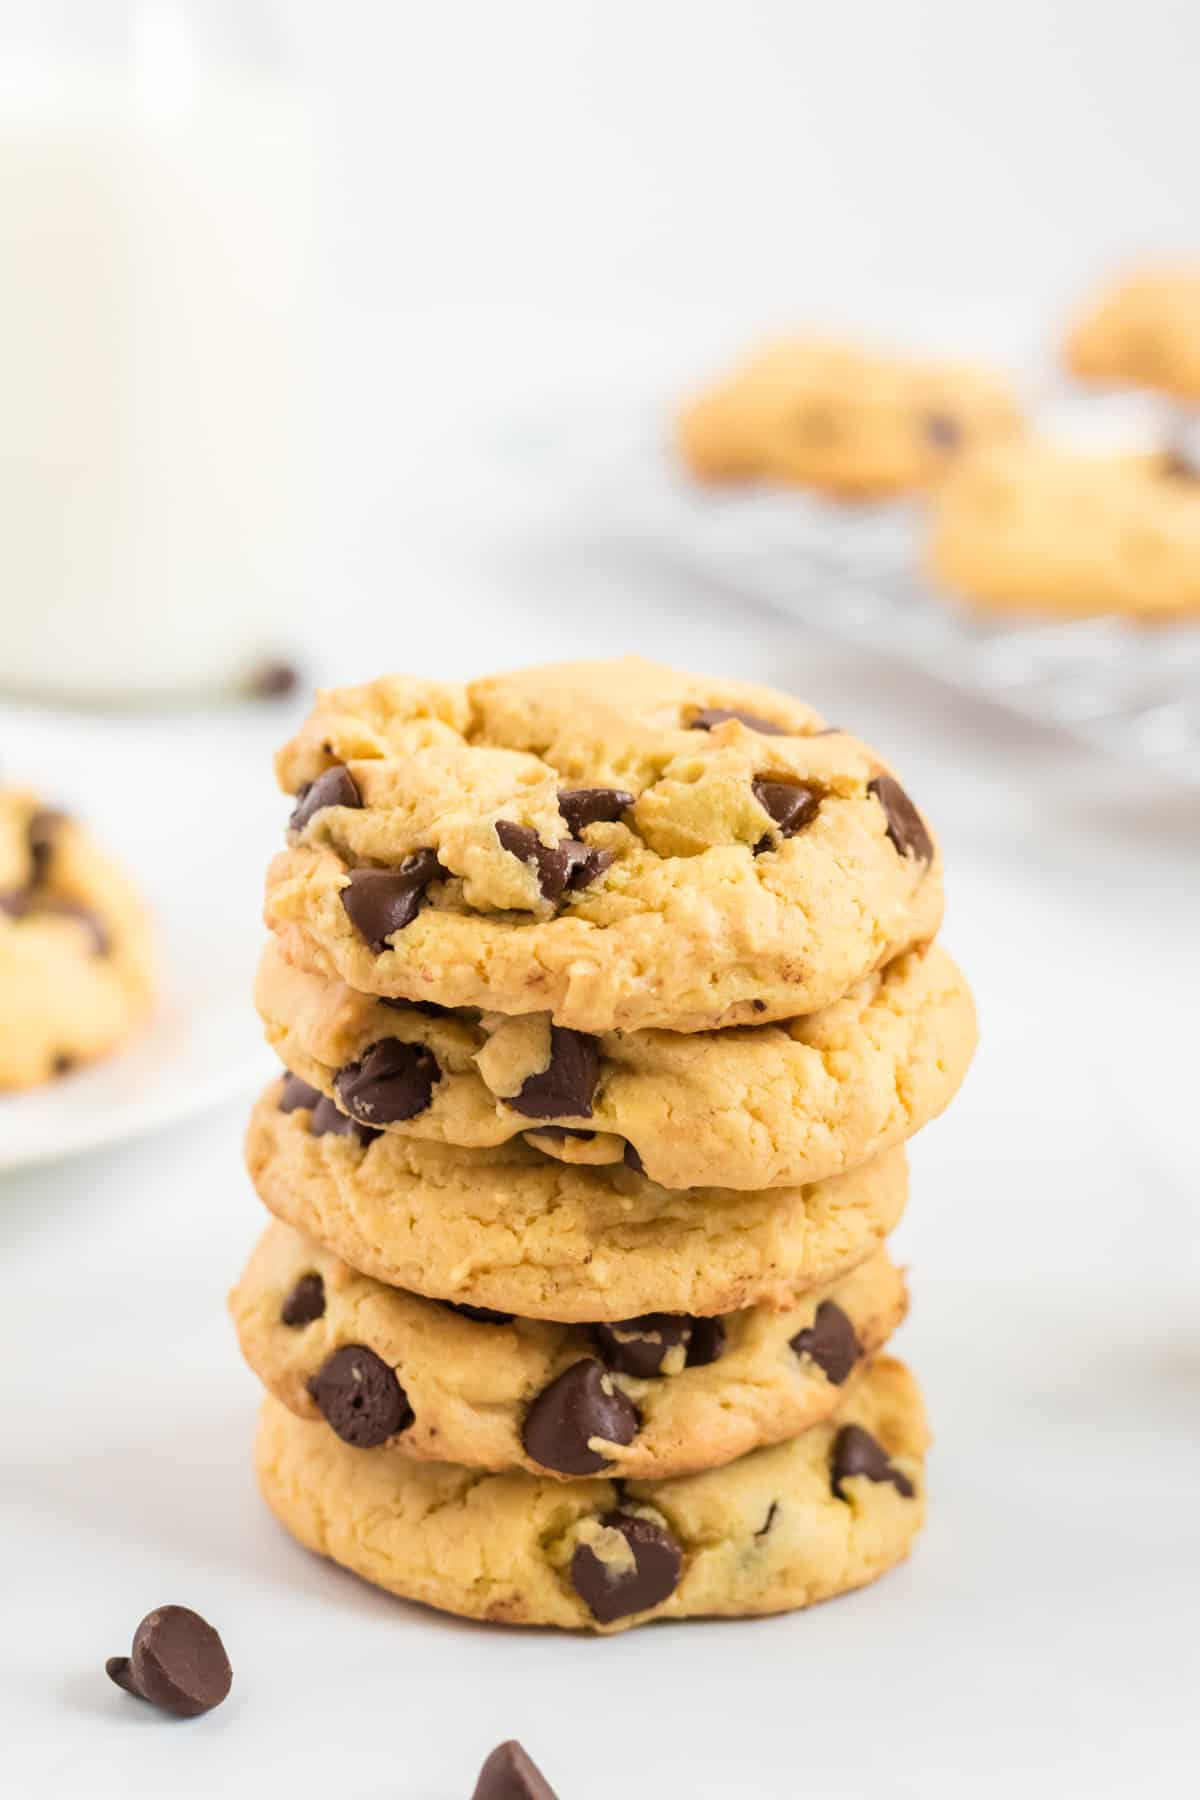 chocolate chip cookies stacked 5 high